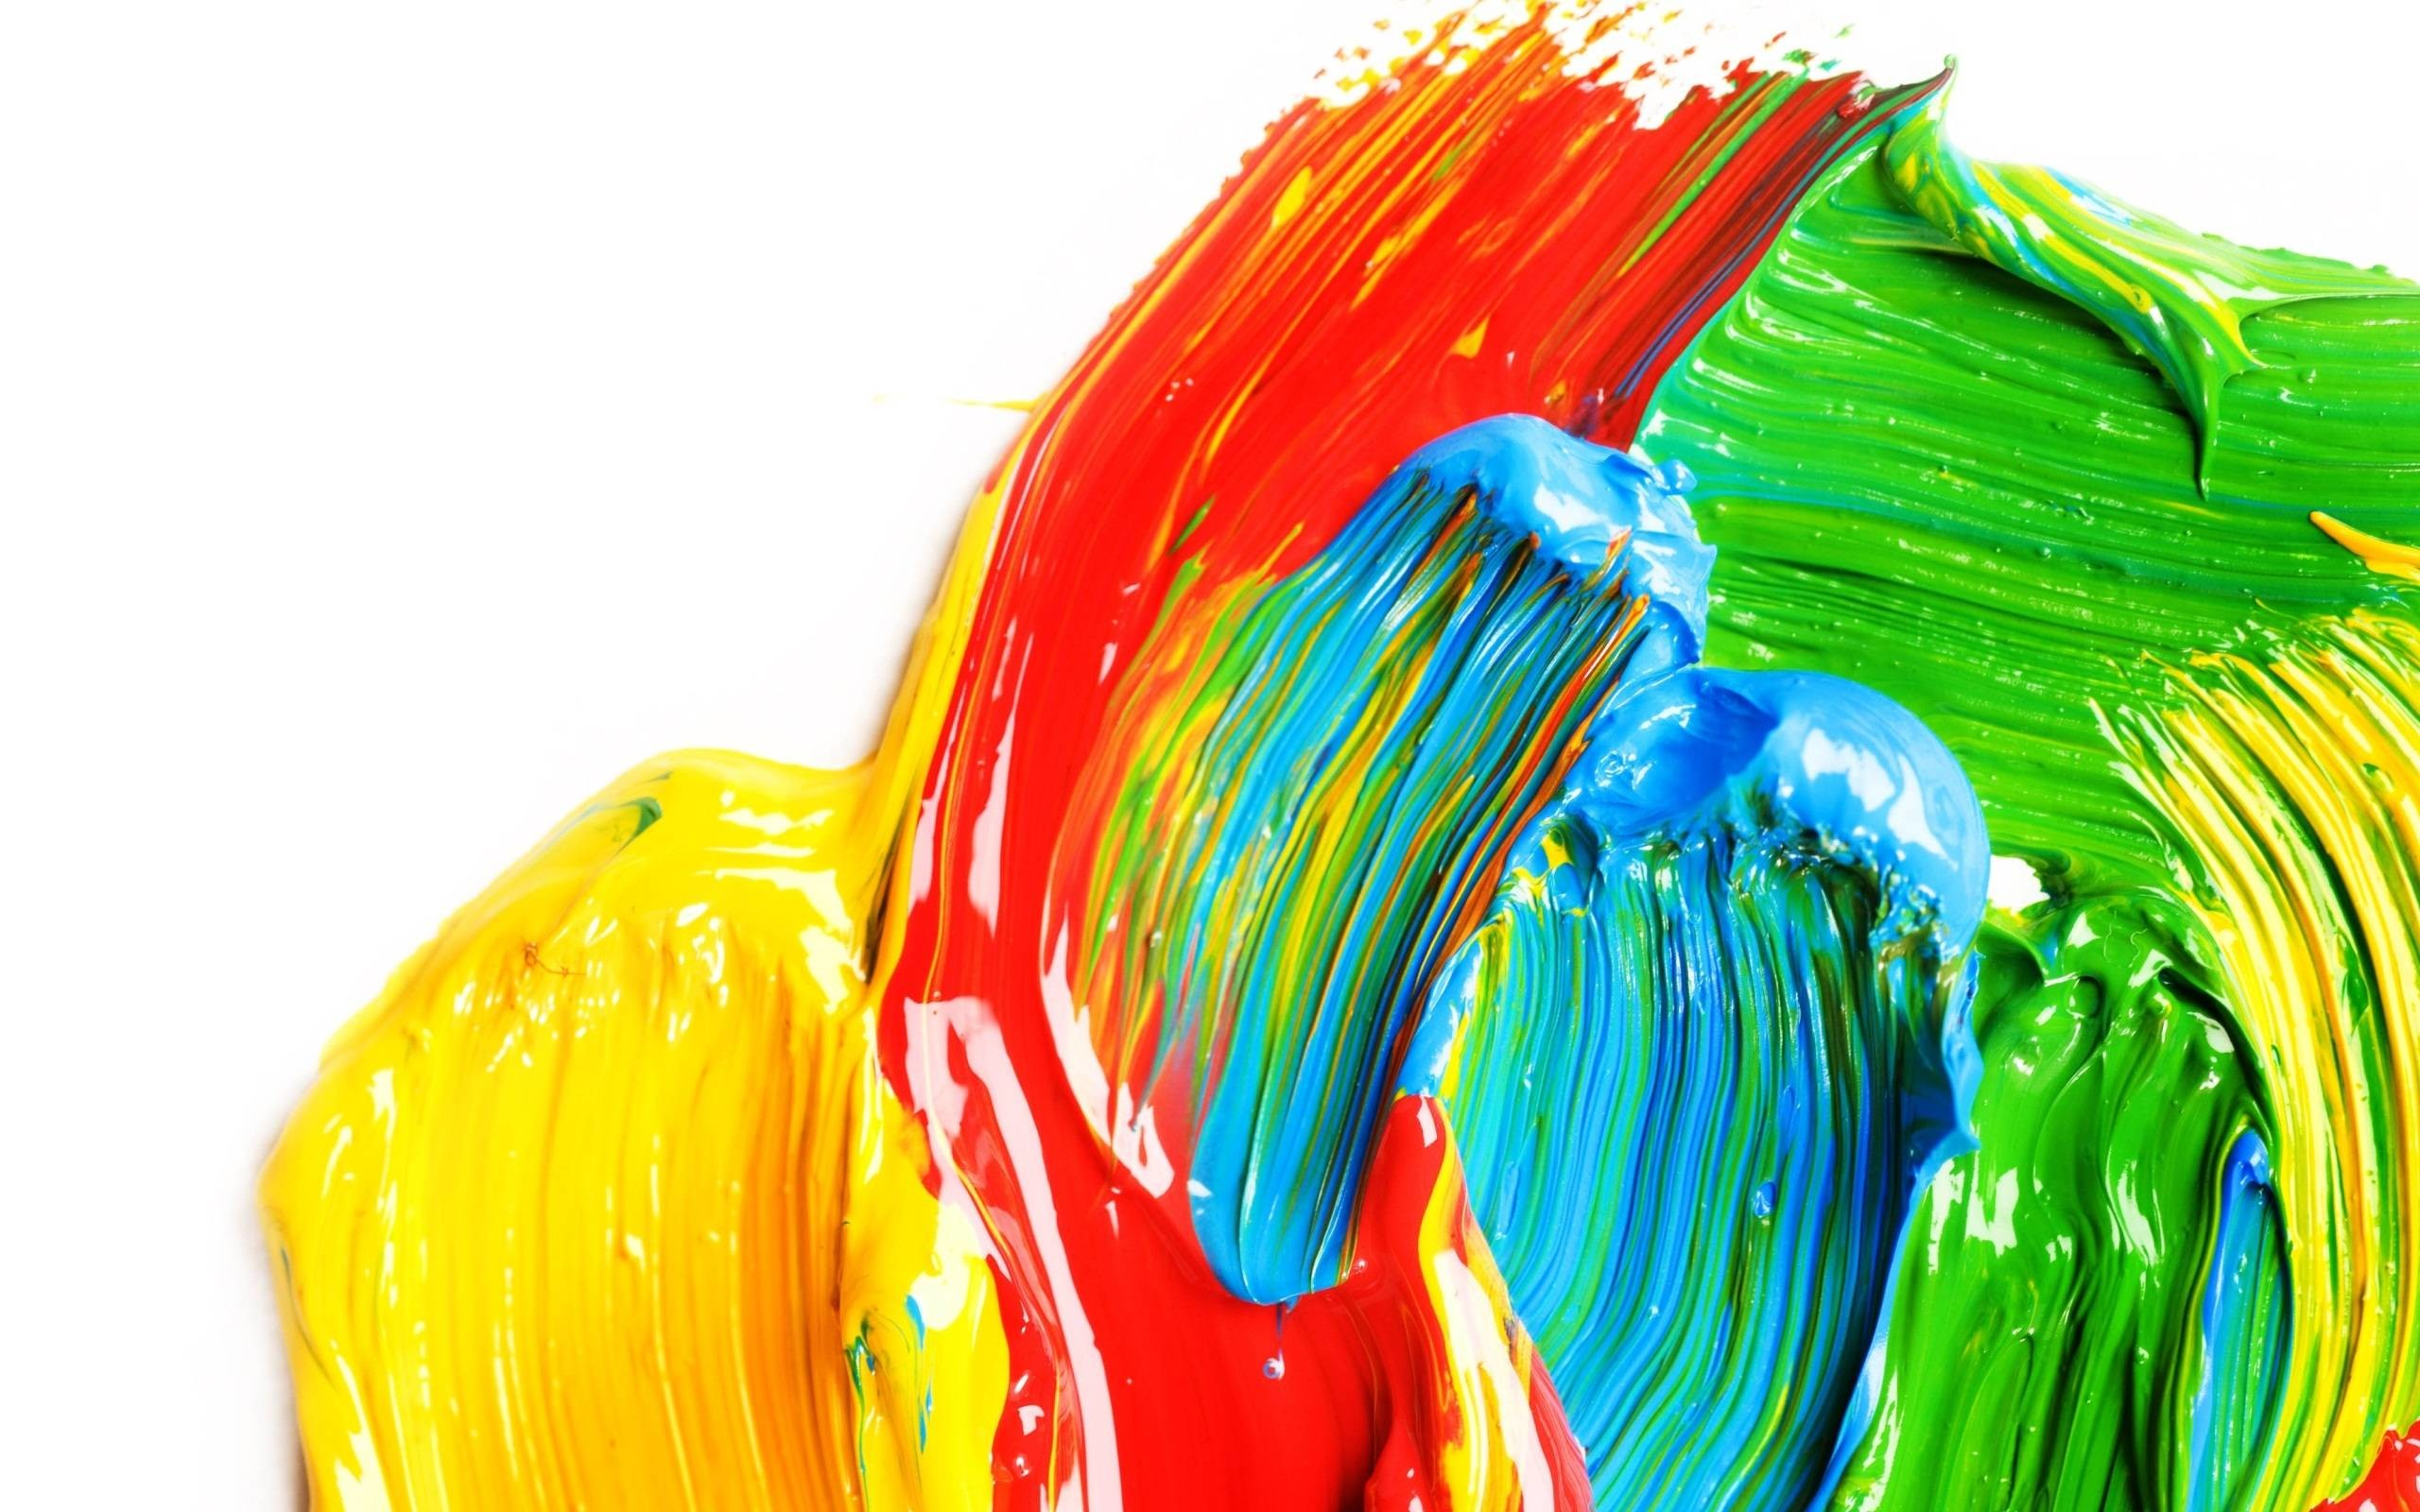 Paint Rainbow Girl Wallpapers: Bright Colorful Wallpaper (59+ Images